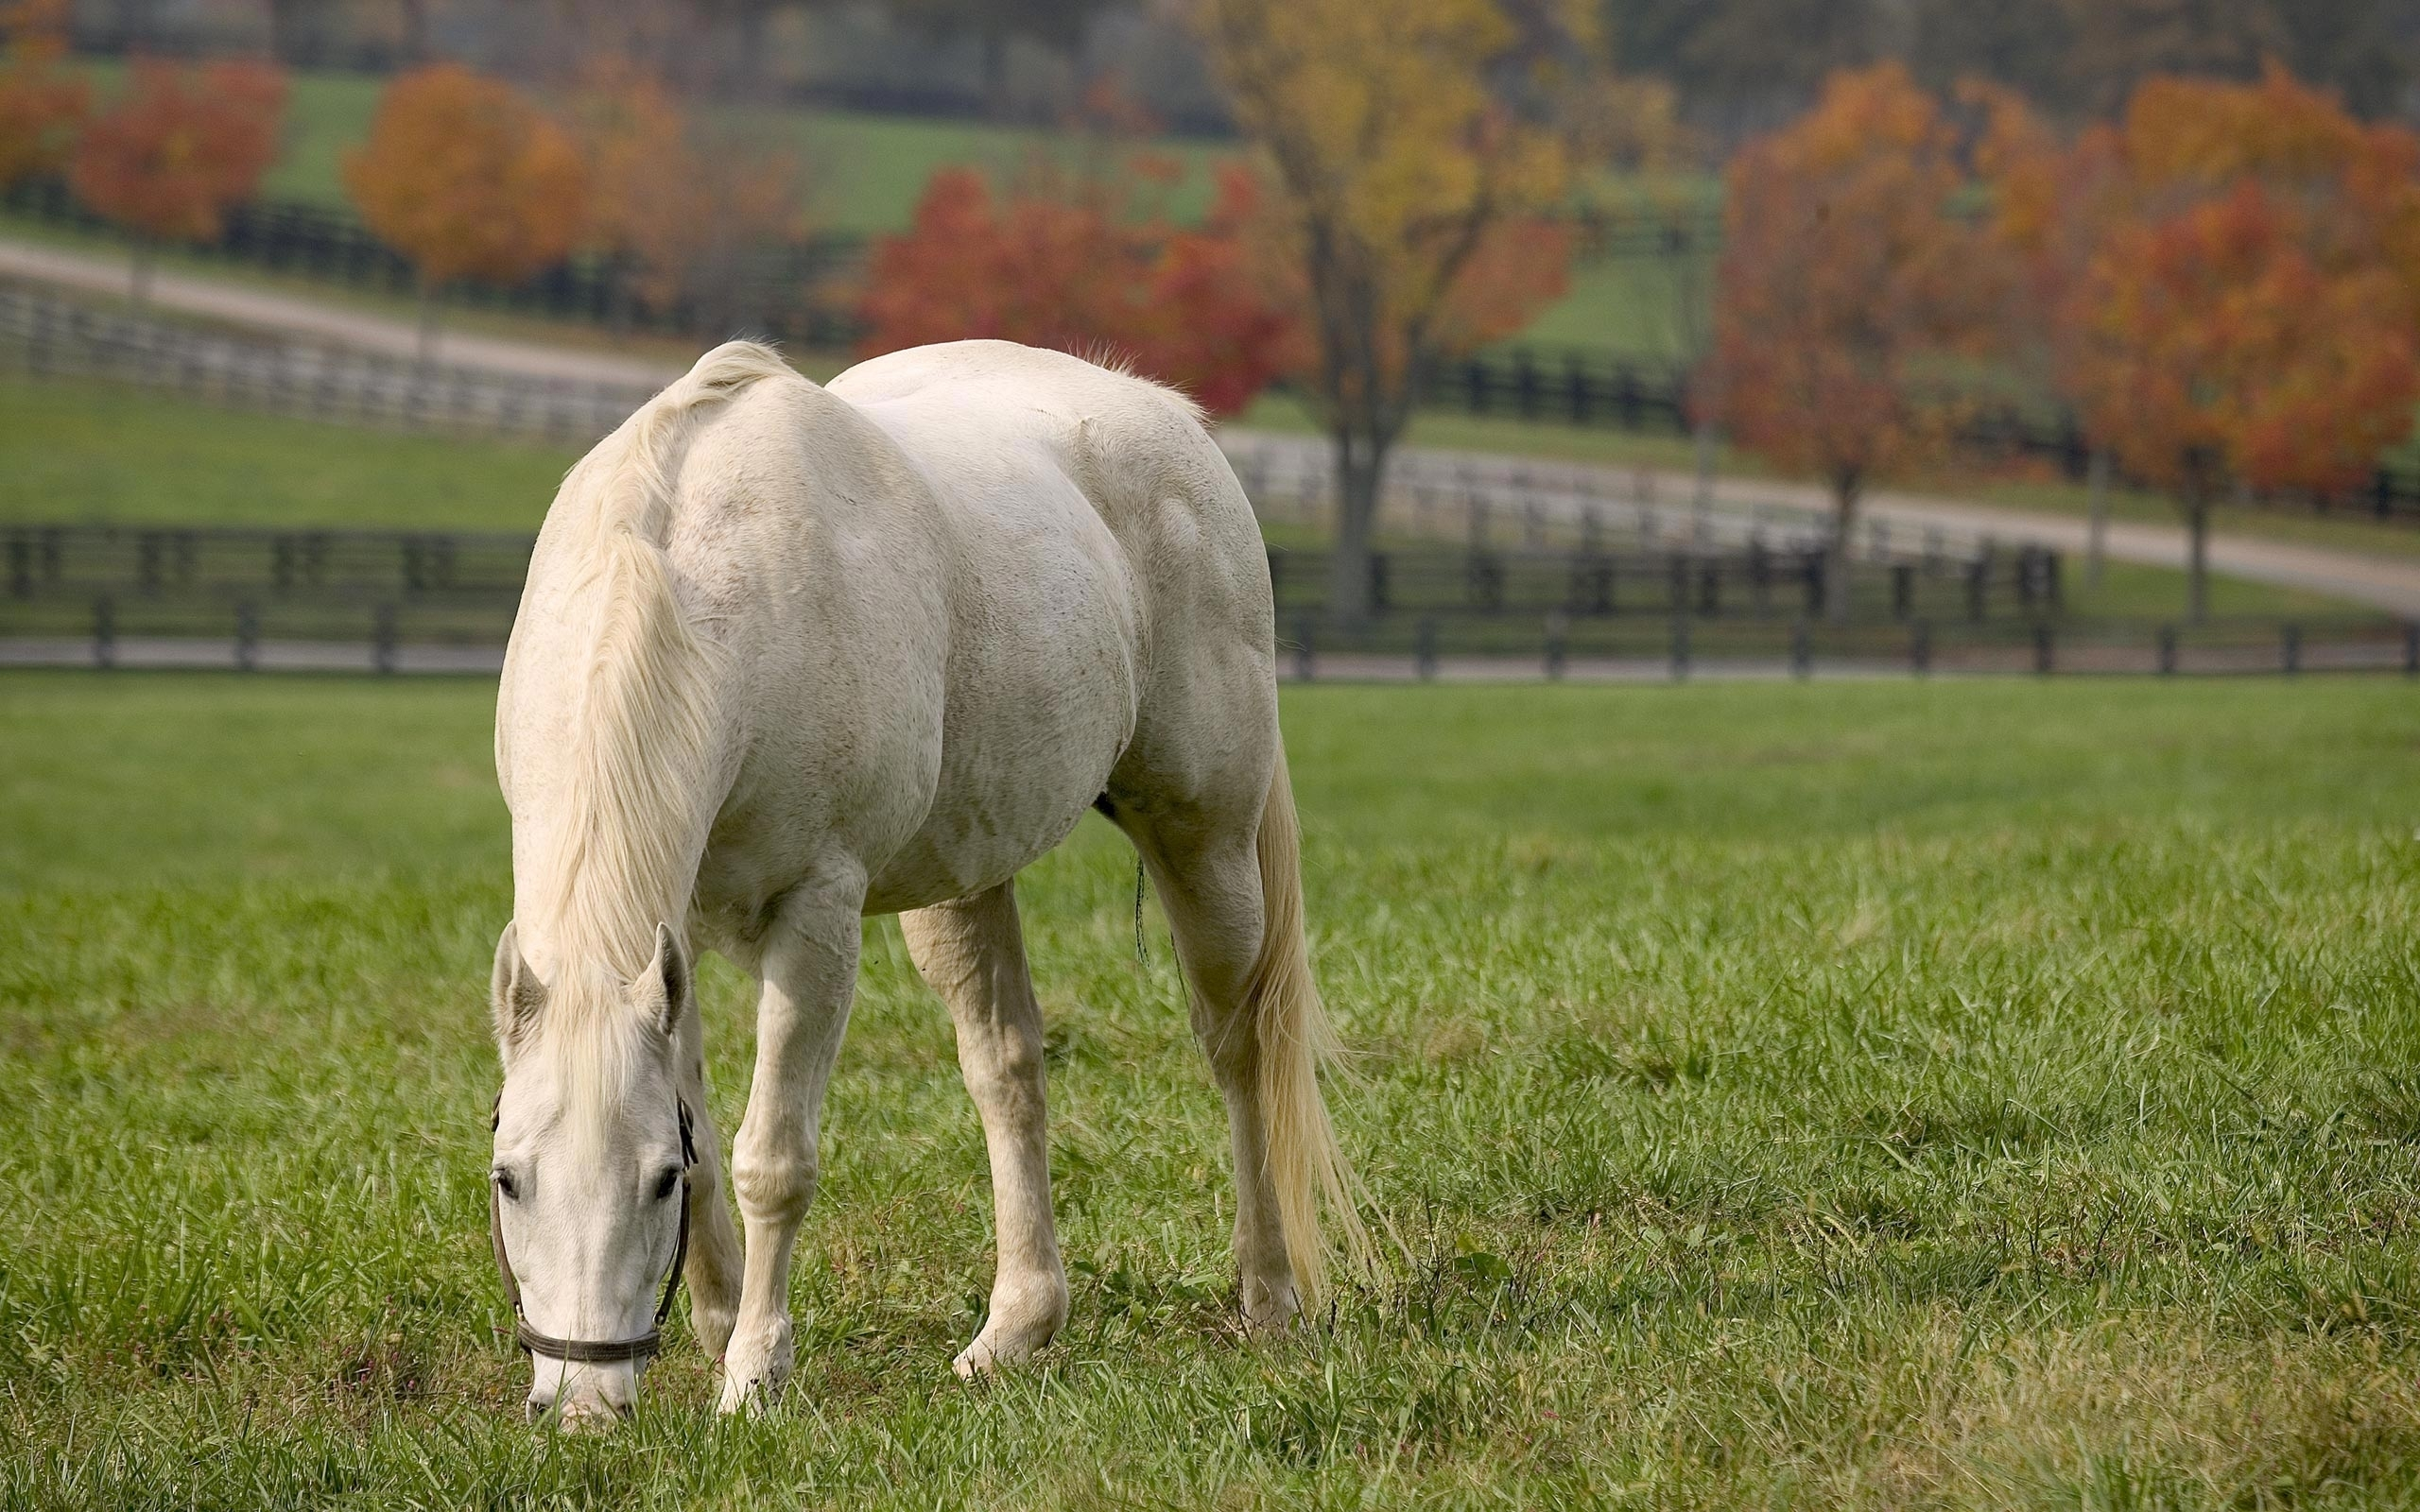 44885 download wallpaper Animals, Horses screensavers and pictures for free